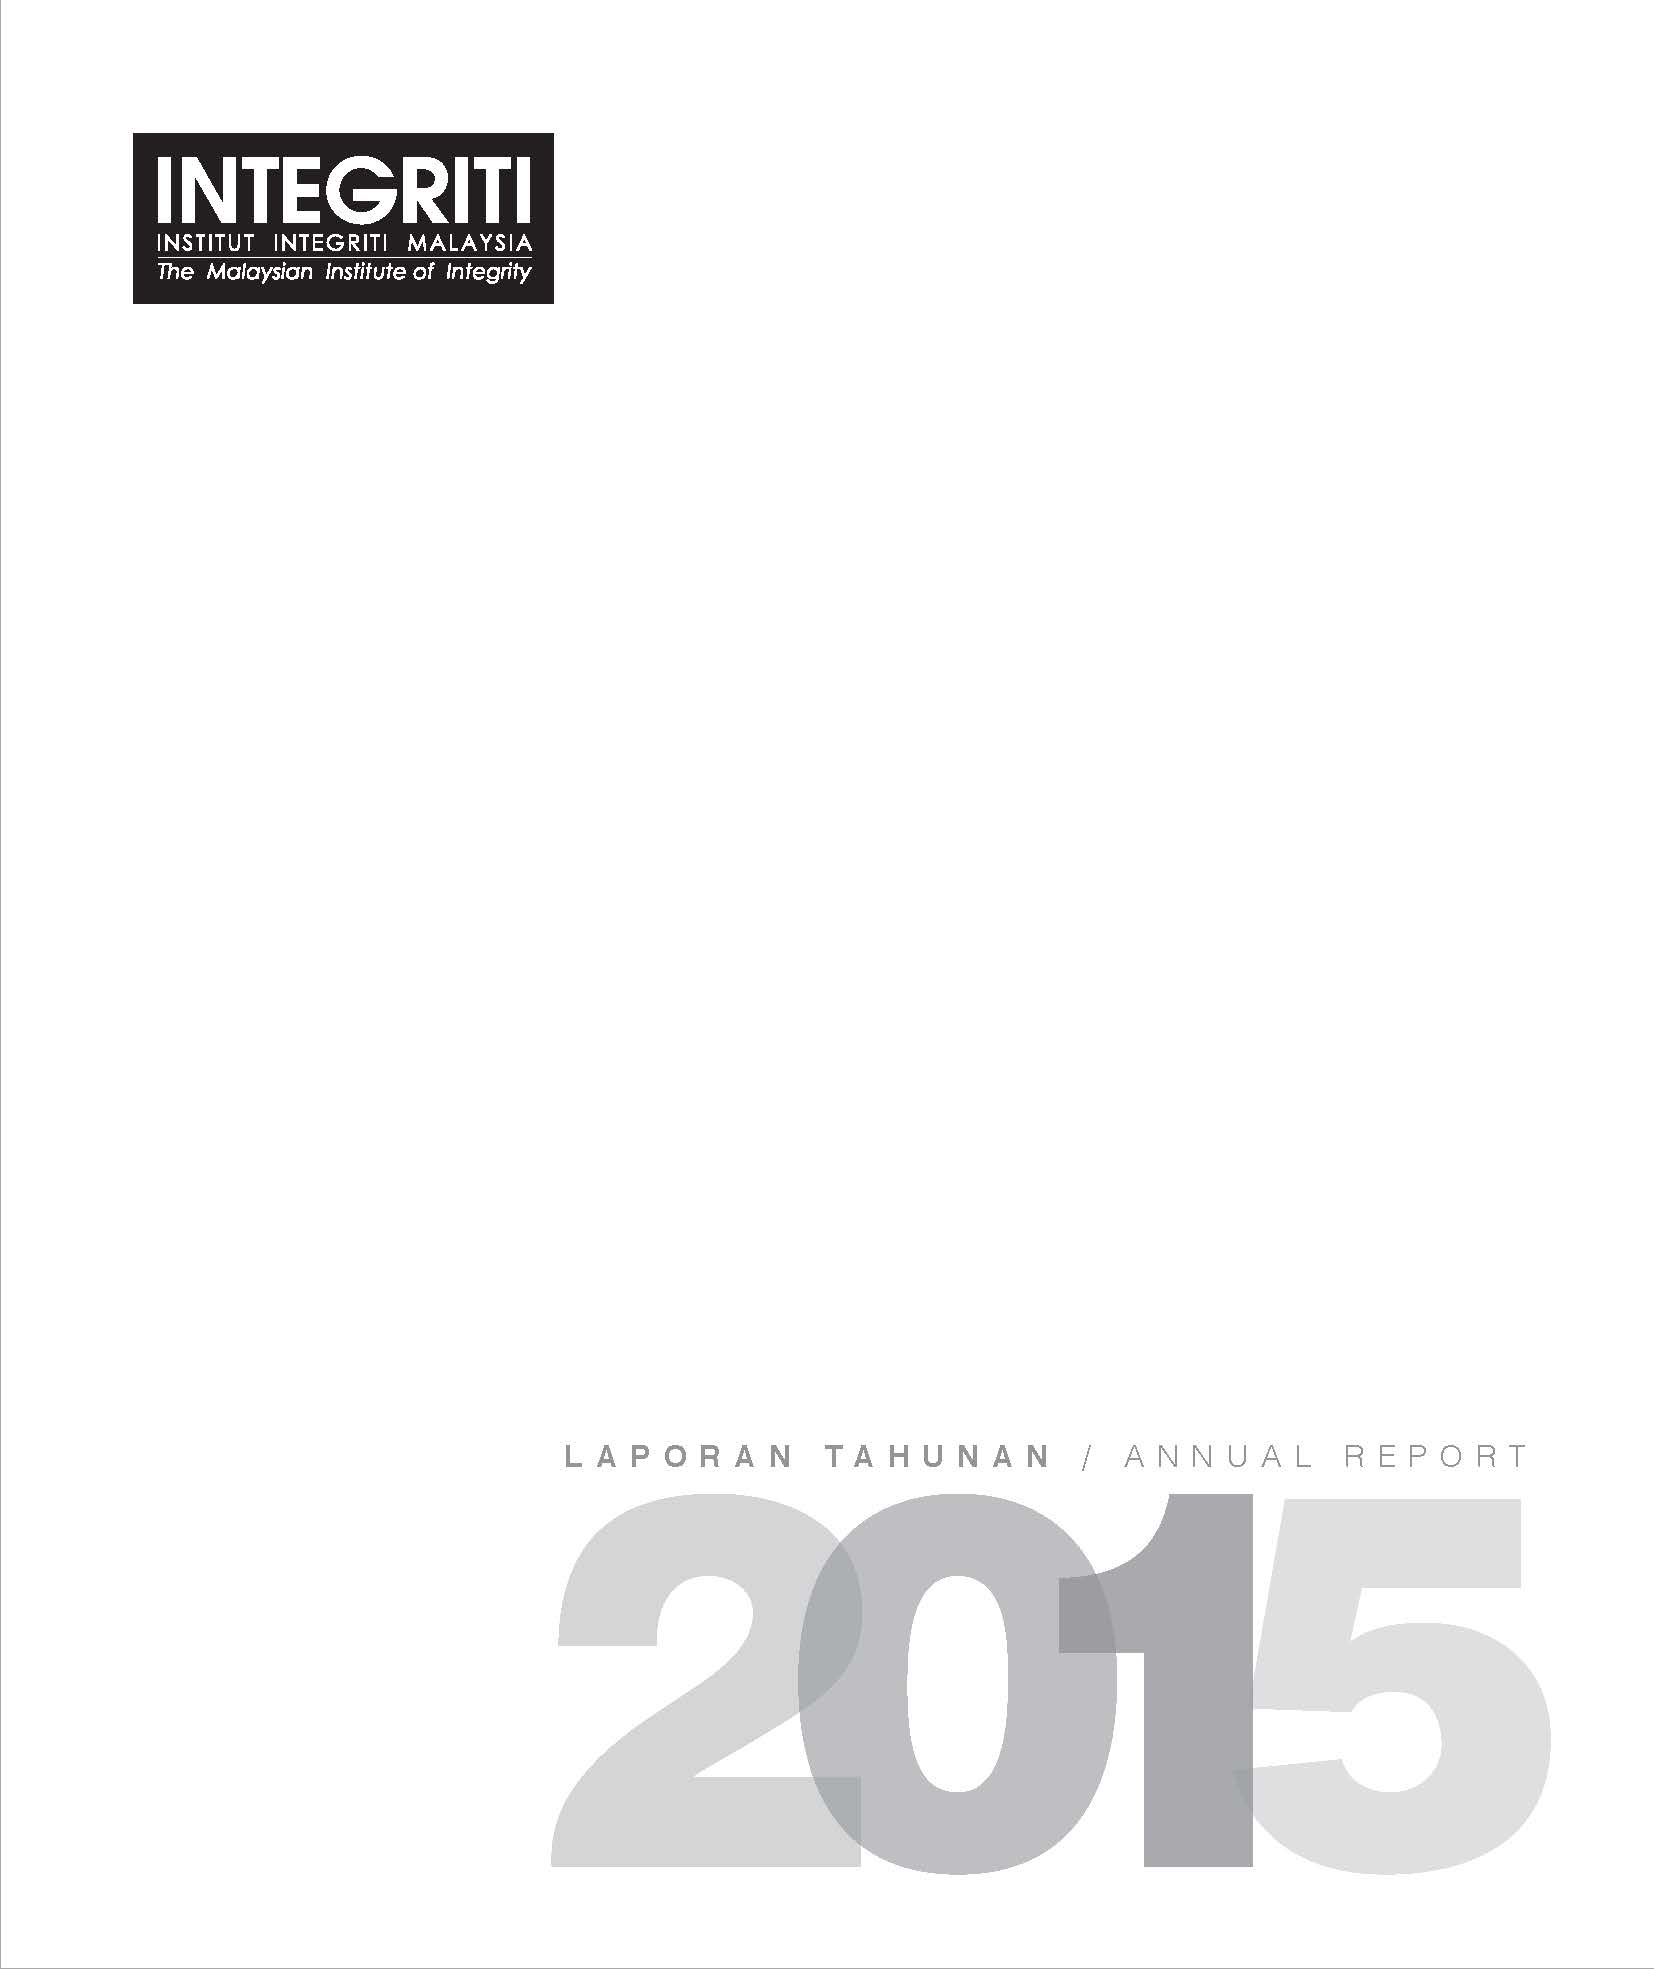 Integriti Annual Report 2015-ls_Page_001